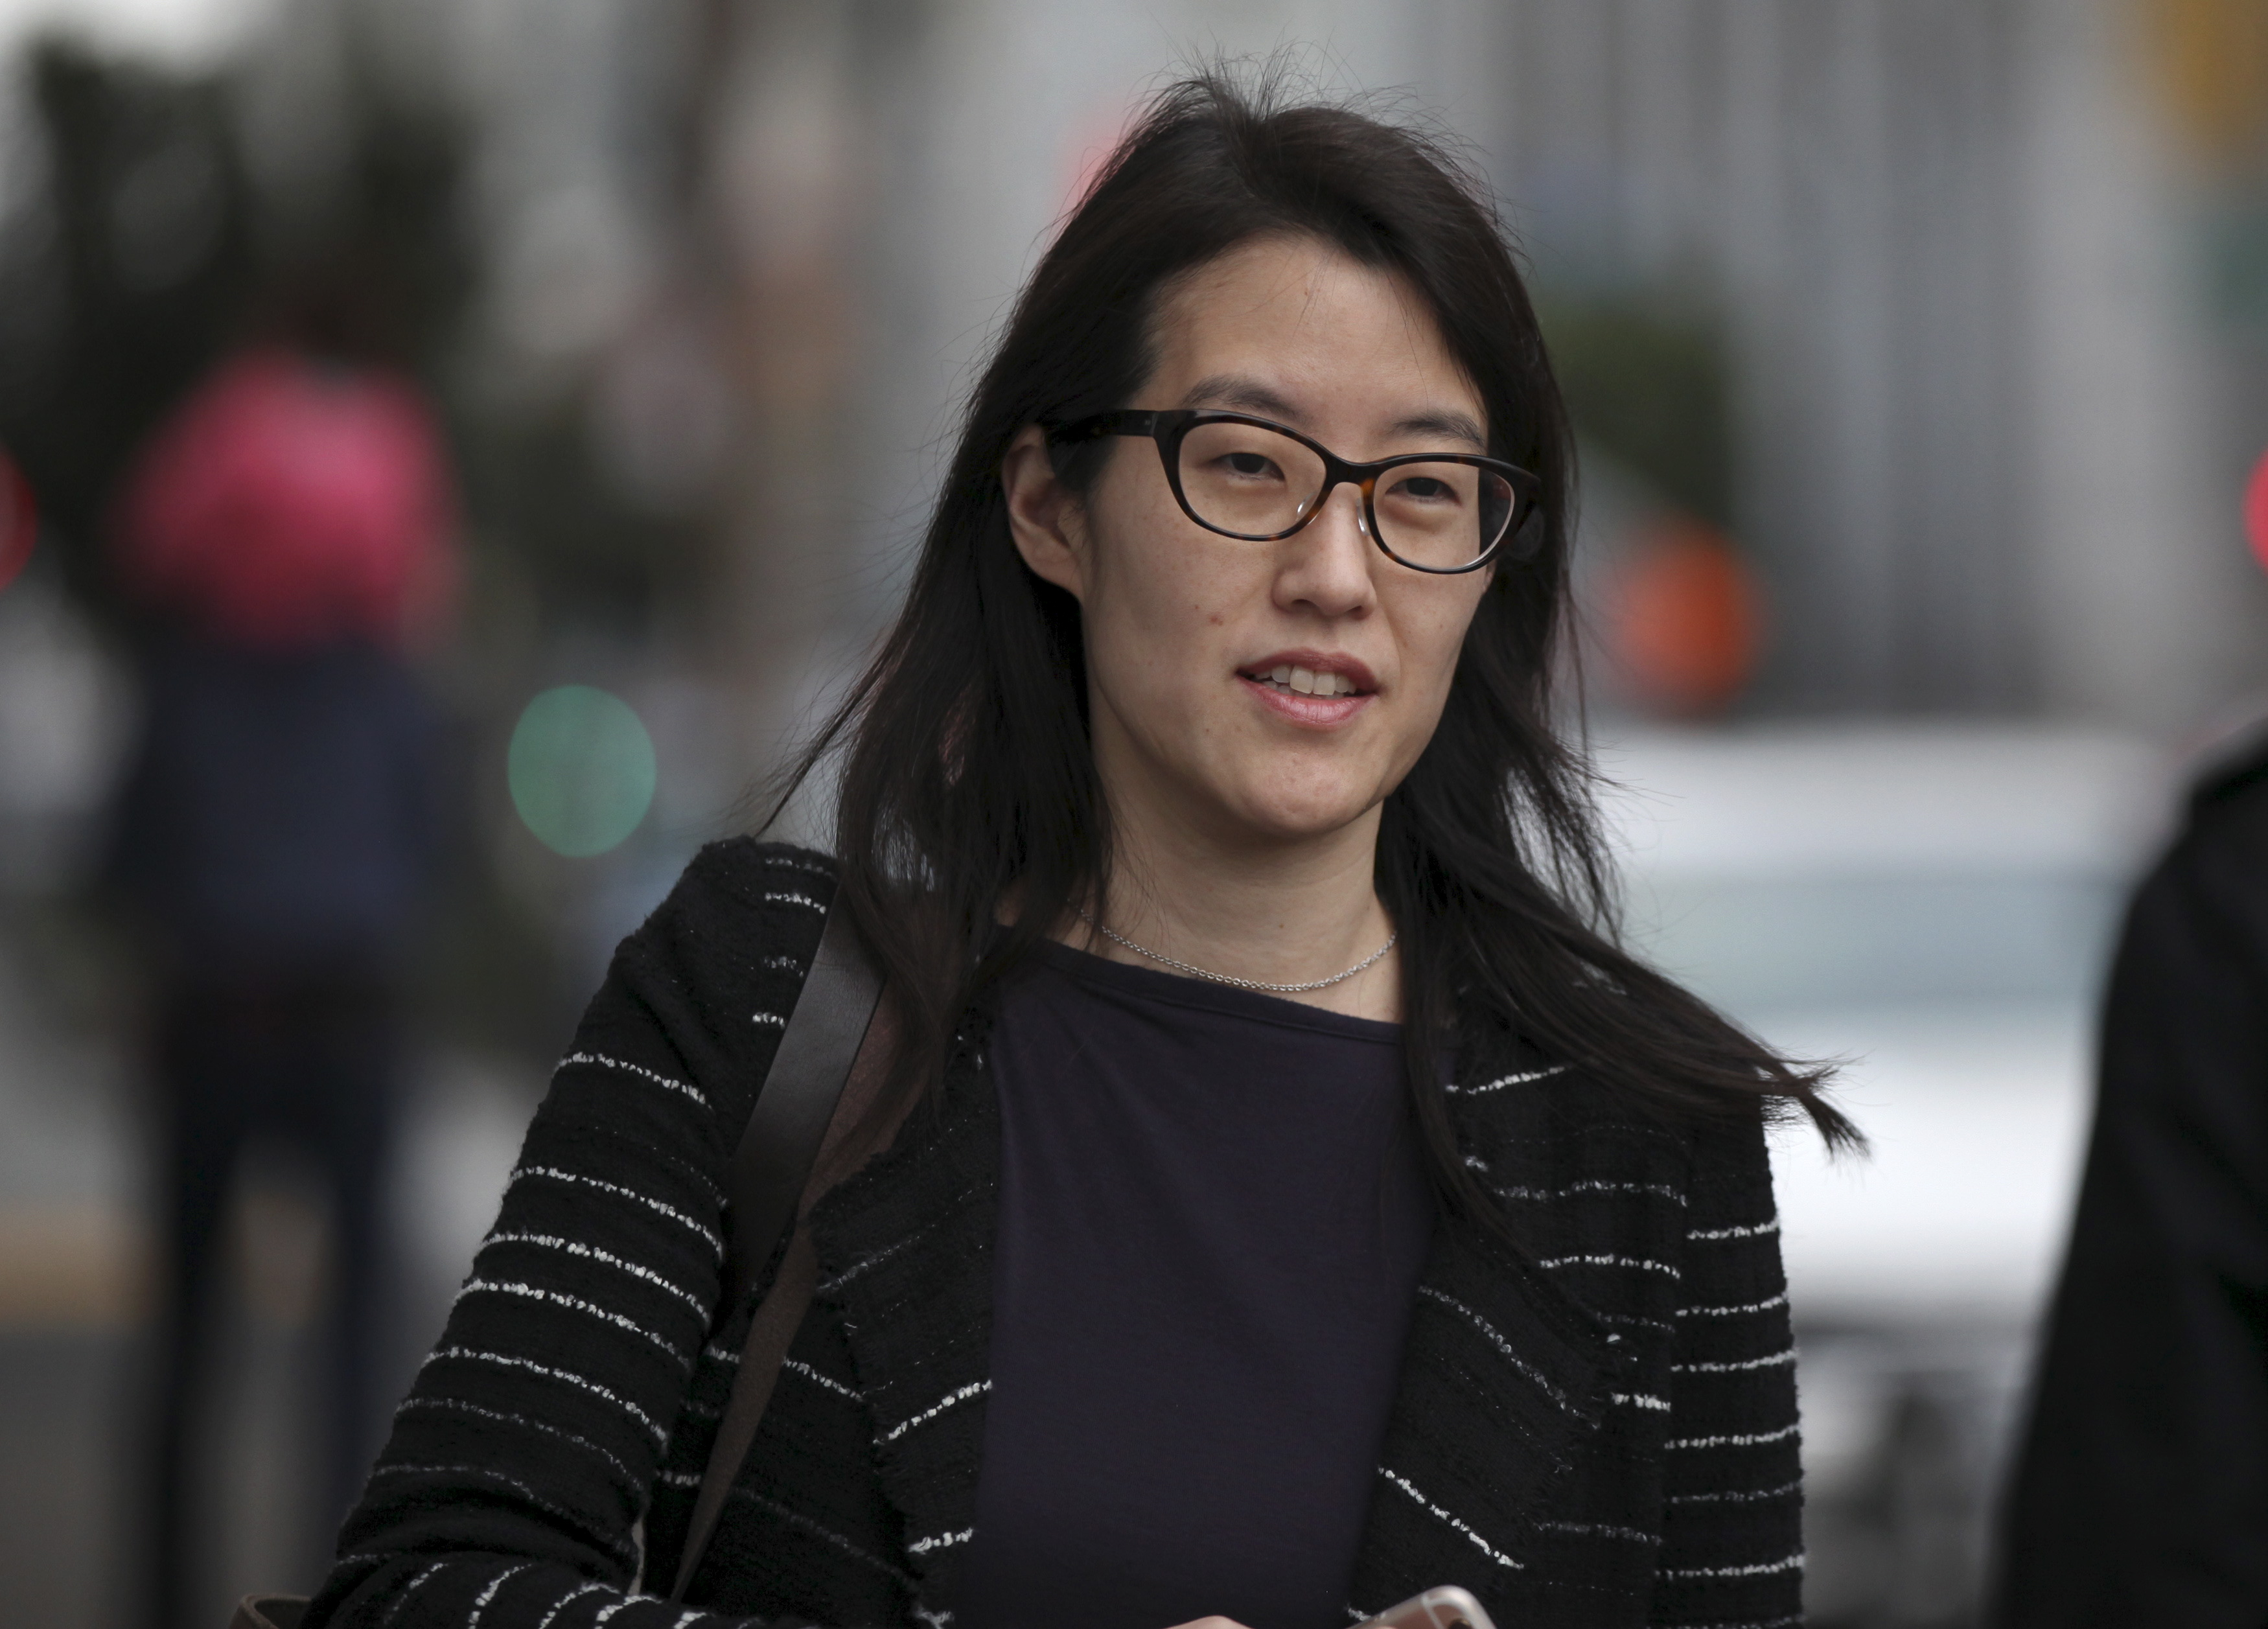 24 Mar 2015, San Francisco, California, USA --- Former Kleiner partner Ellen Pao arrives at San Francisco Superior Court in San Francisco, California in this March 24, 2015. A landmark Silicon Valley sex bias case that has forced venture capital firm Kleiner Perkins Caufield & Byers to air awkward details about its operations was set to begin closing arguments after four weeks of testimony. That will pave the way for a California jury to deliberate claims by Pao that have helped spark a broad discussion about sexism in the notoriously clubby tech start-up scene. REUTERS/Robert Galbraith --- Image by © ROBERT GALBRAITH/Reuters/Corbis